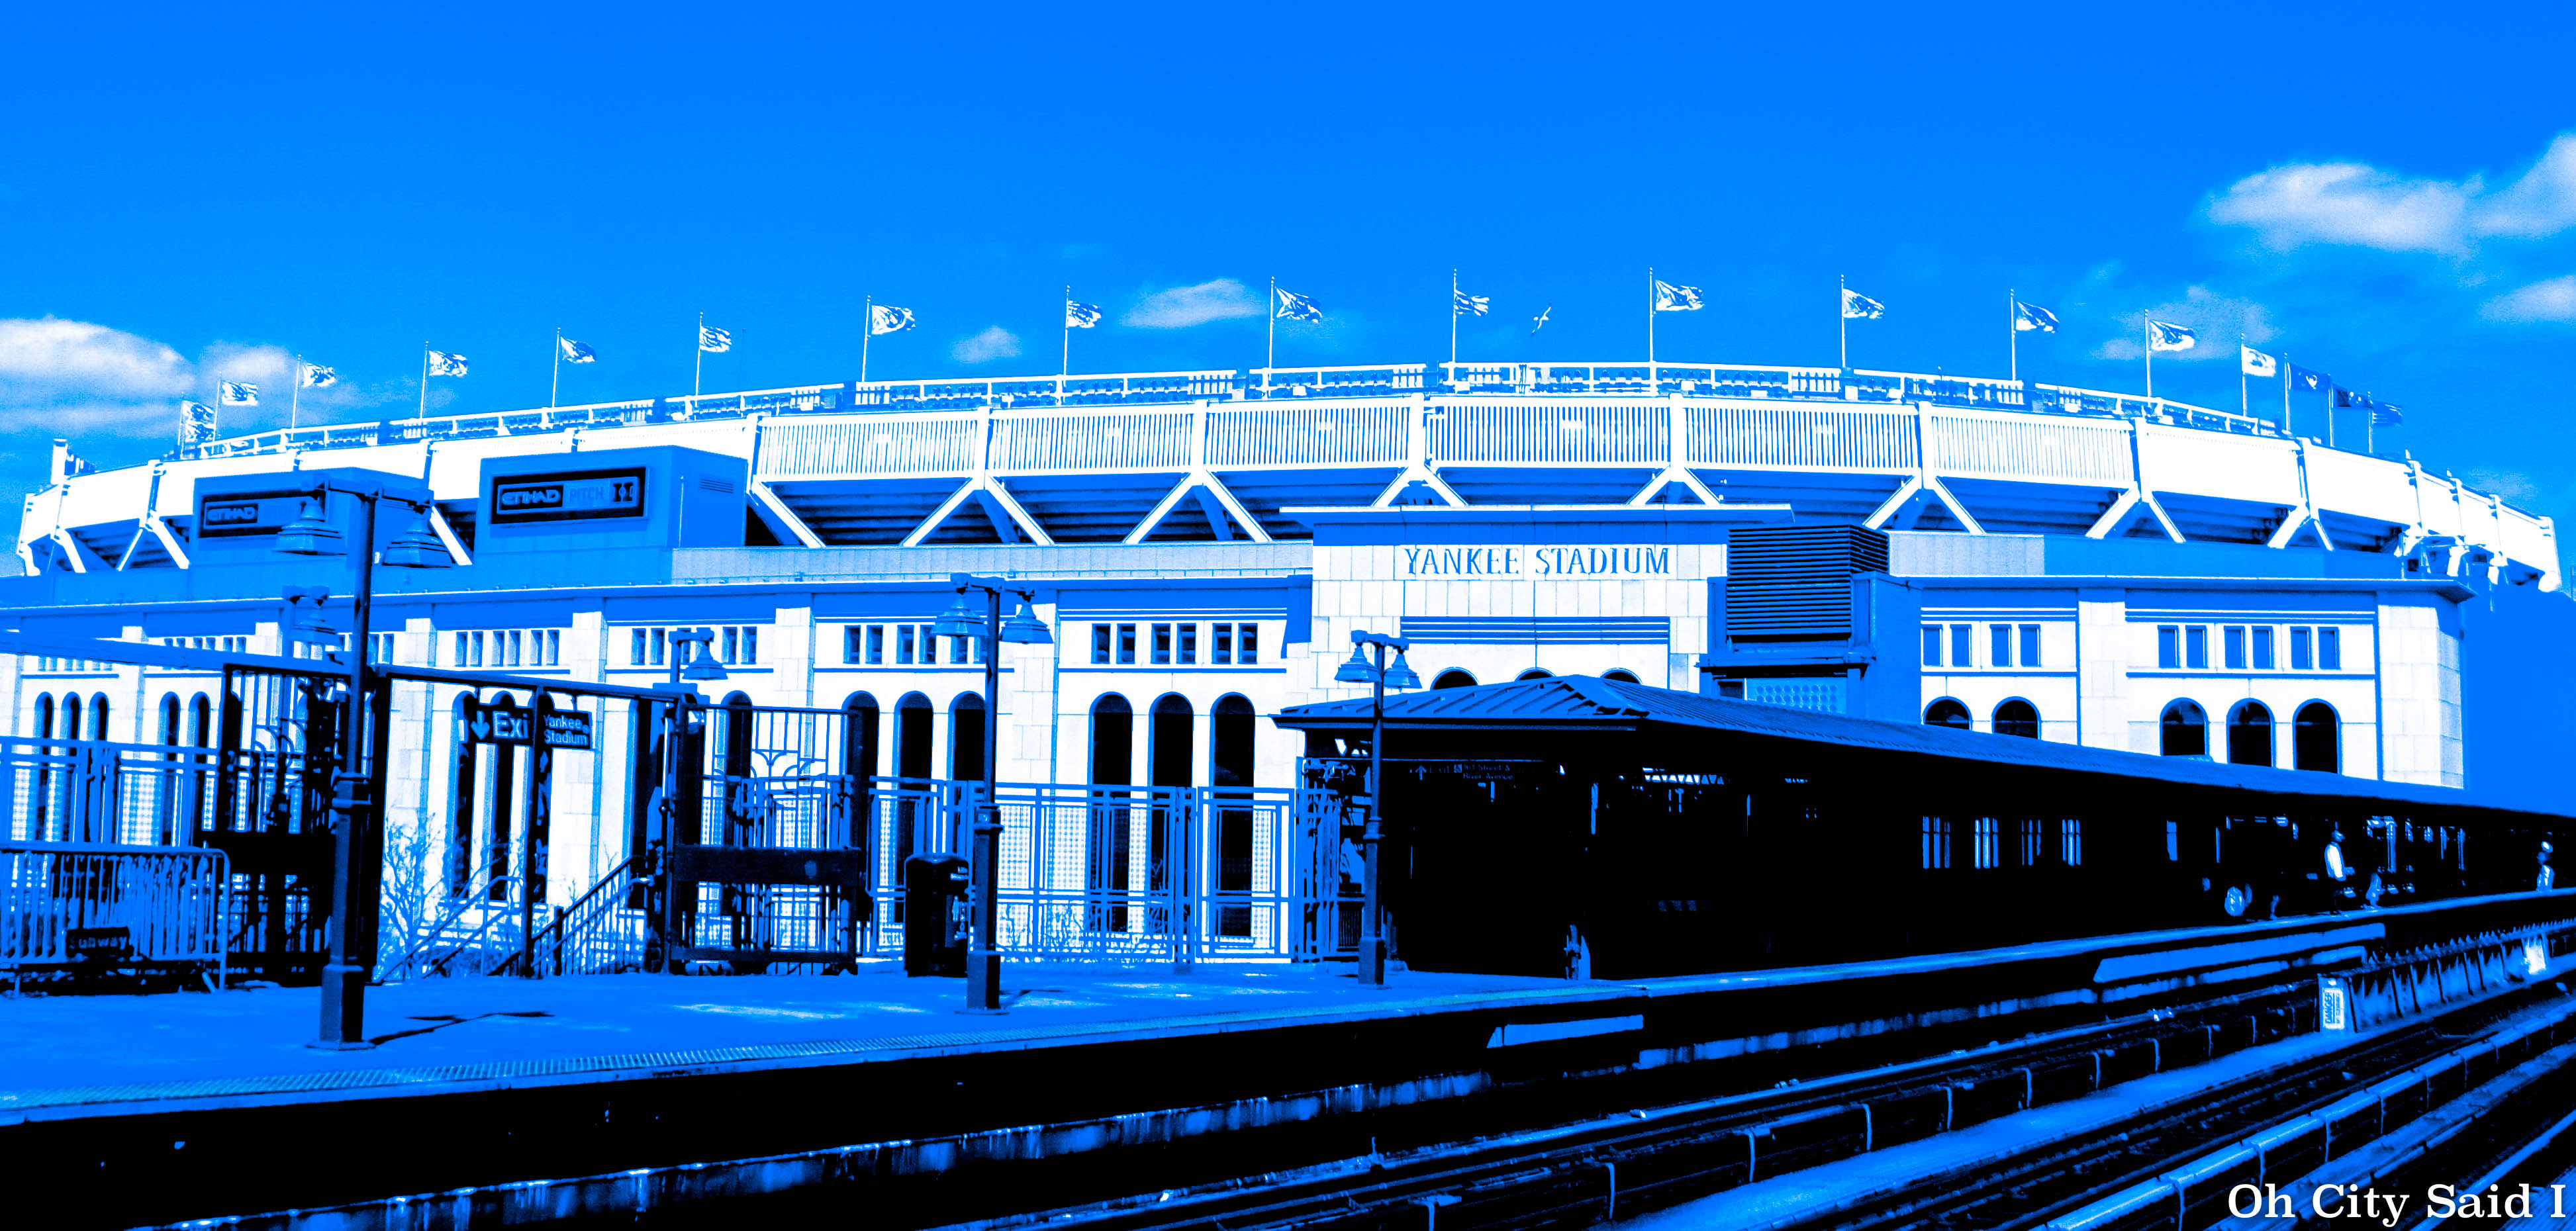 Yankee Stadium hosts Sporting KC tonight